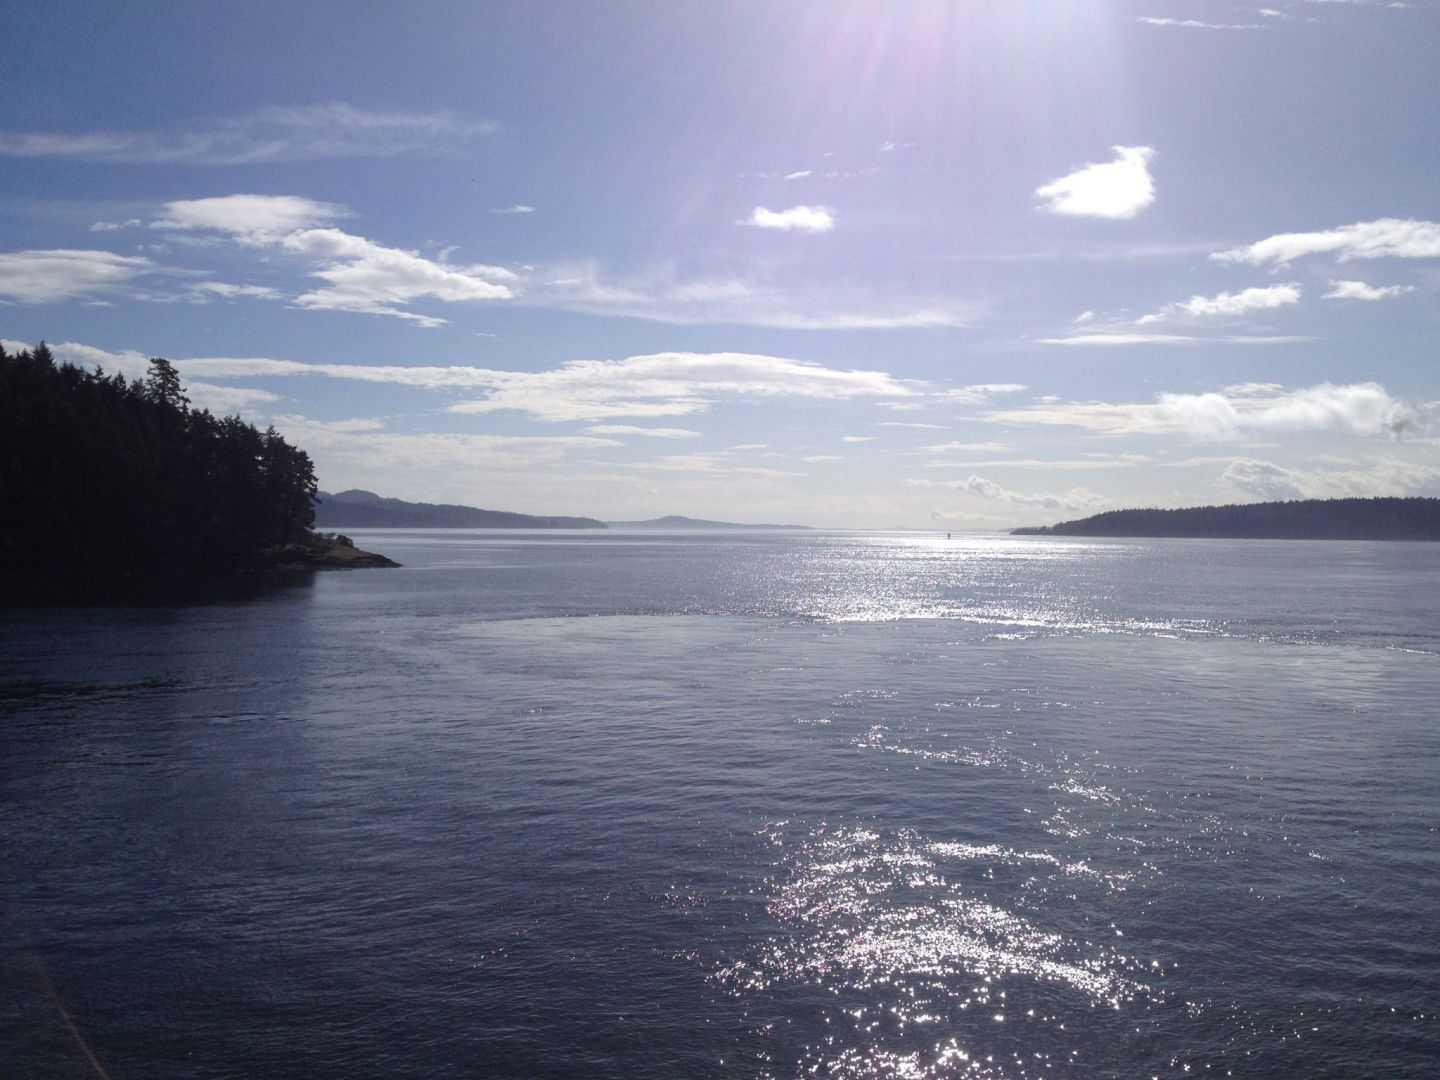 The ferry journey to Salt Spring Island, British Columbia